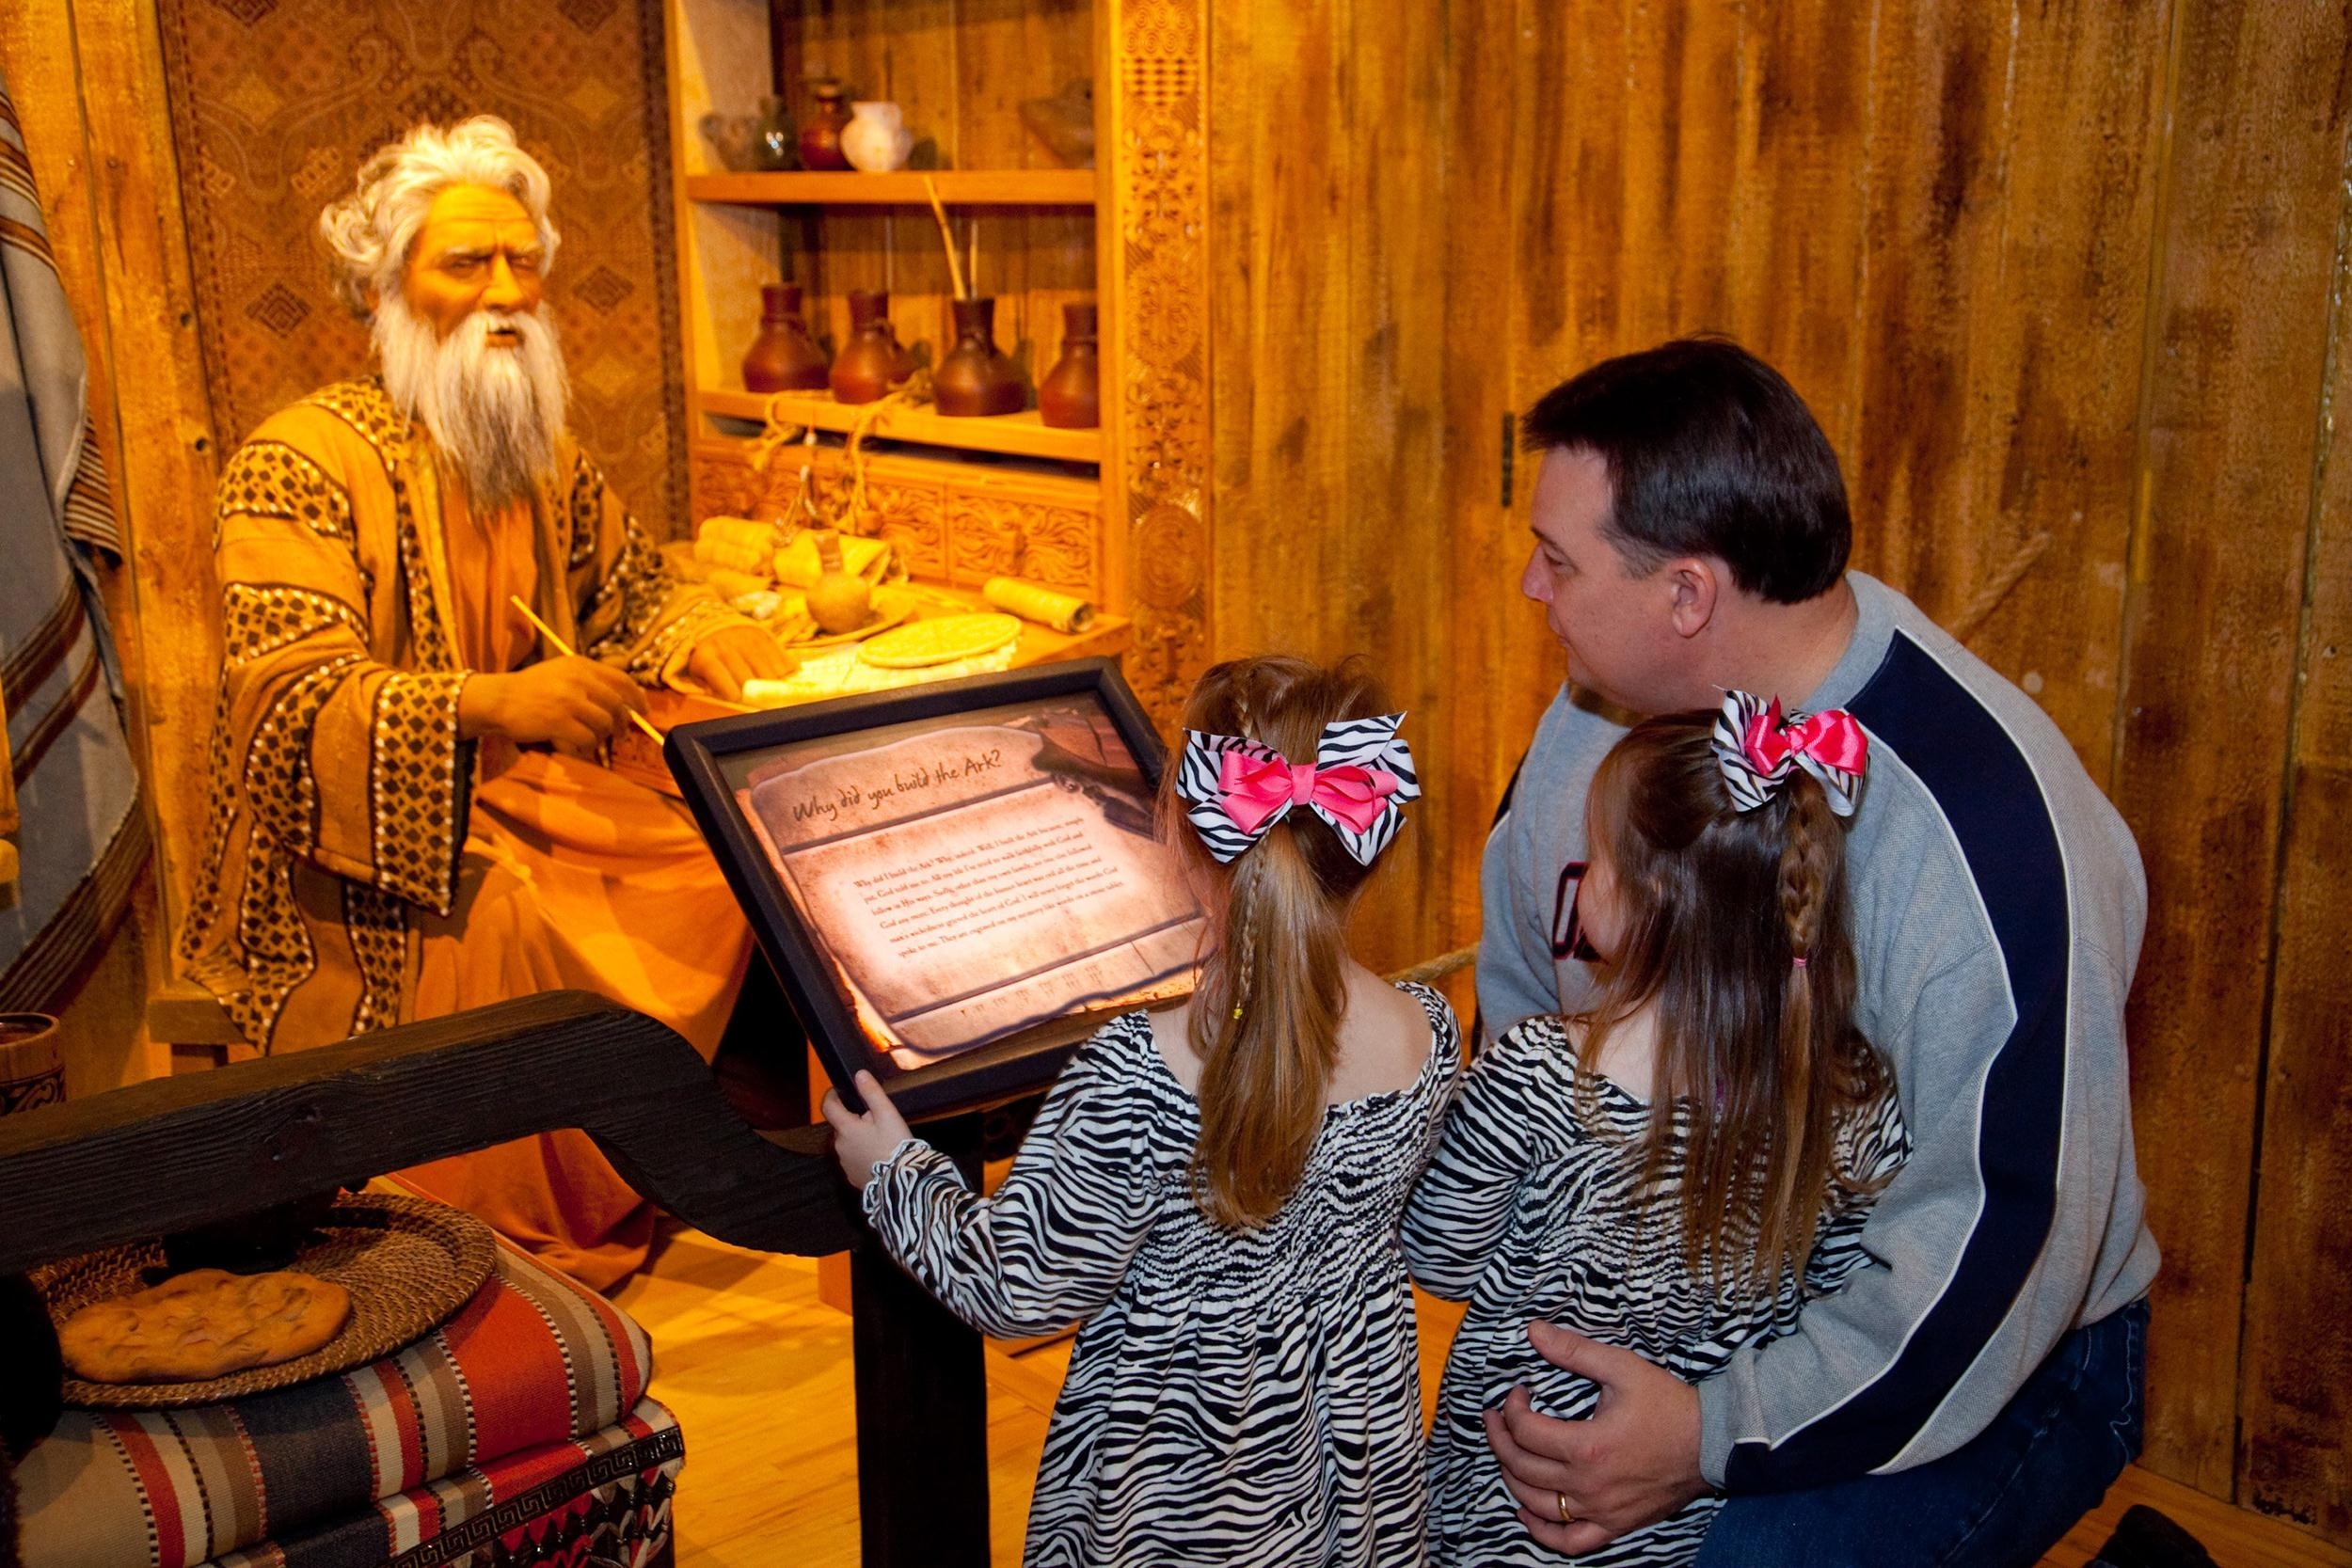 Image:  Sisters Bella, 5 and Laura Katherine Coker 3, of Jackson, Miss tour the Creation Museum in Petersburg, Ky with their father John Coker. One of the animatronic displays allows visitors to ask question of Noah including one